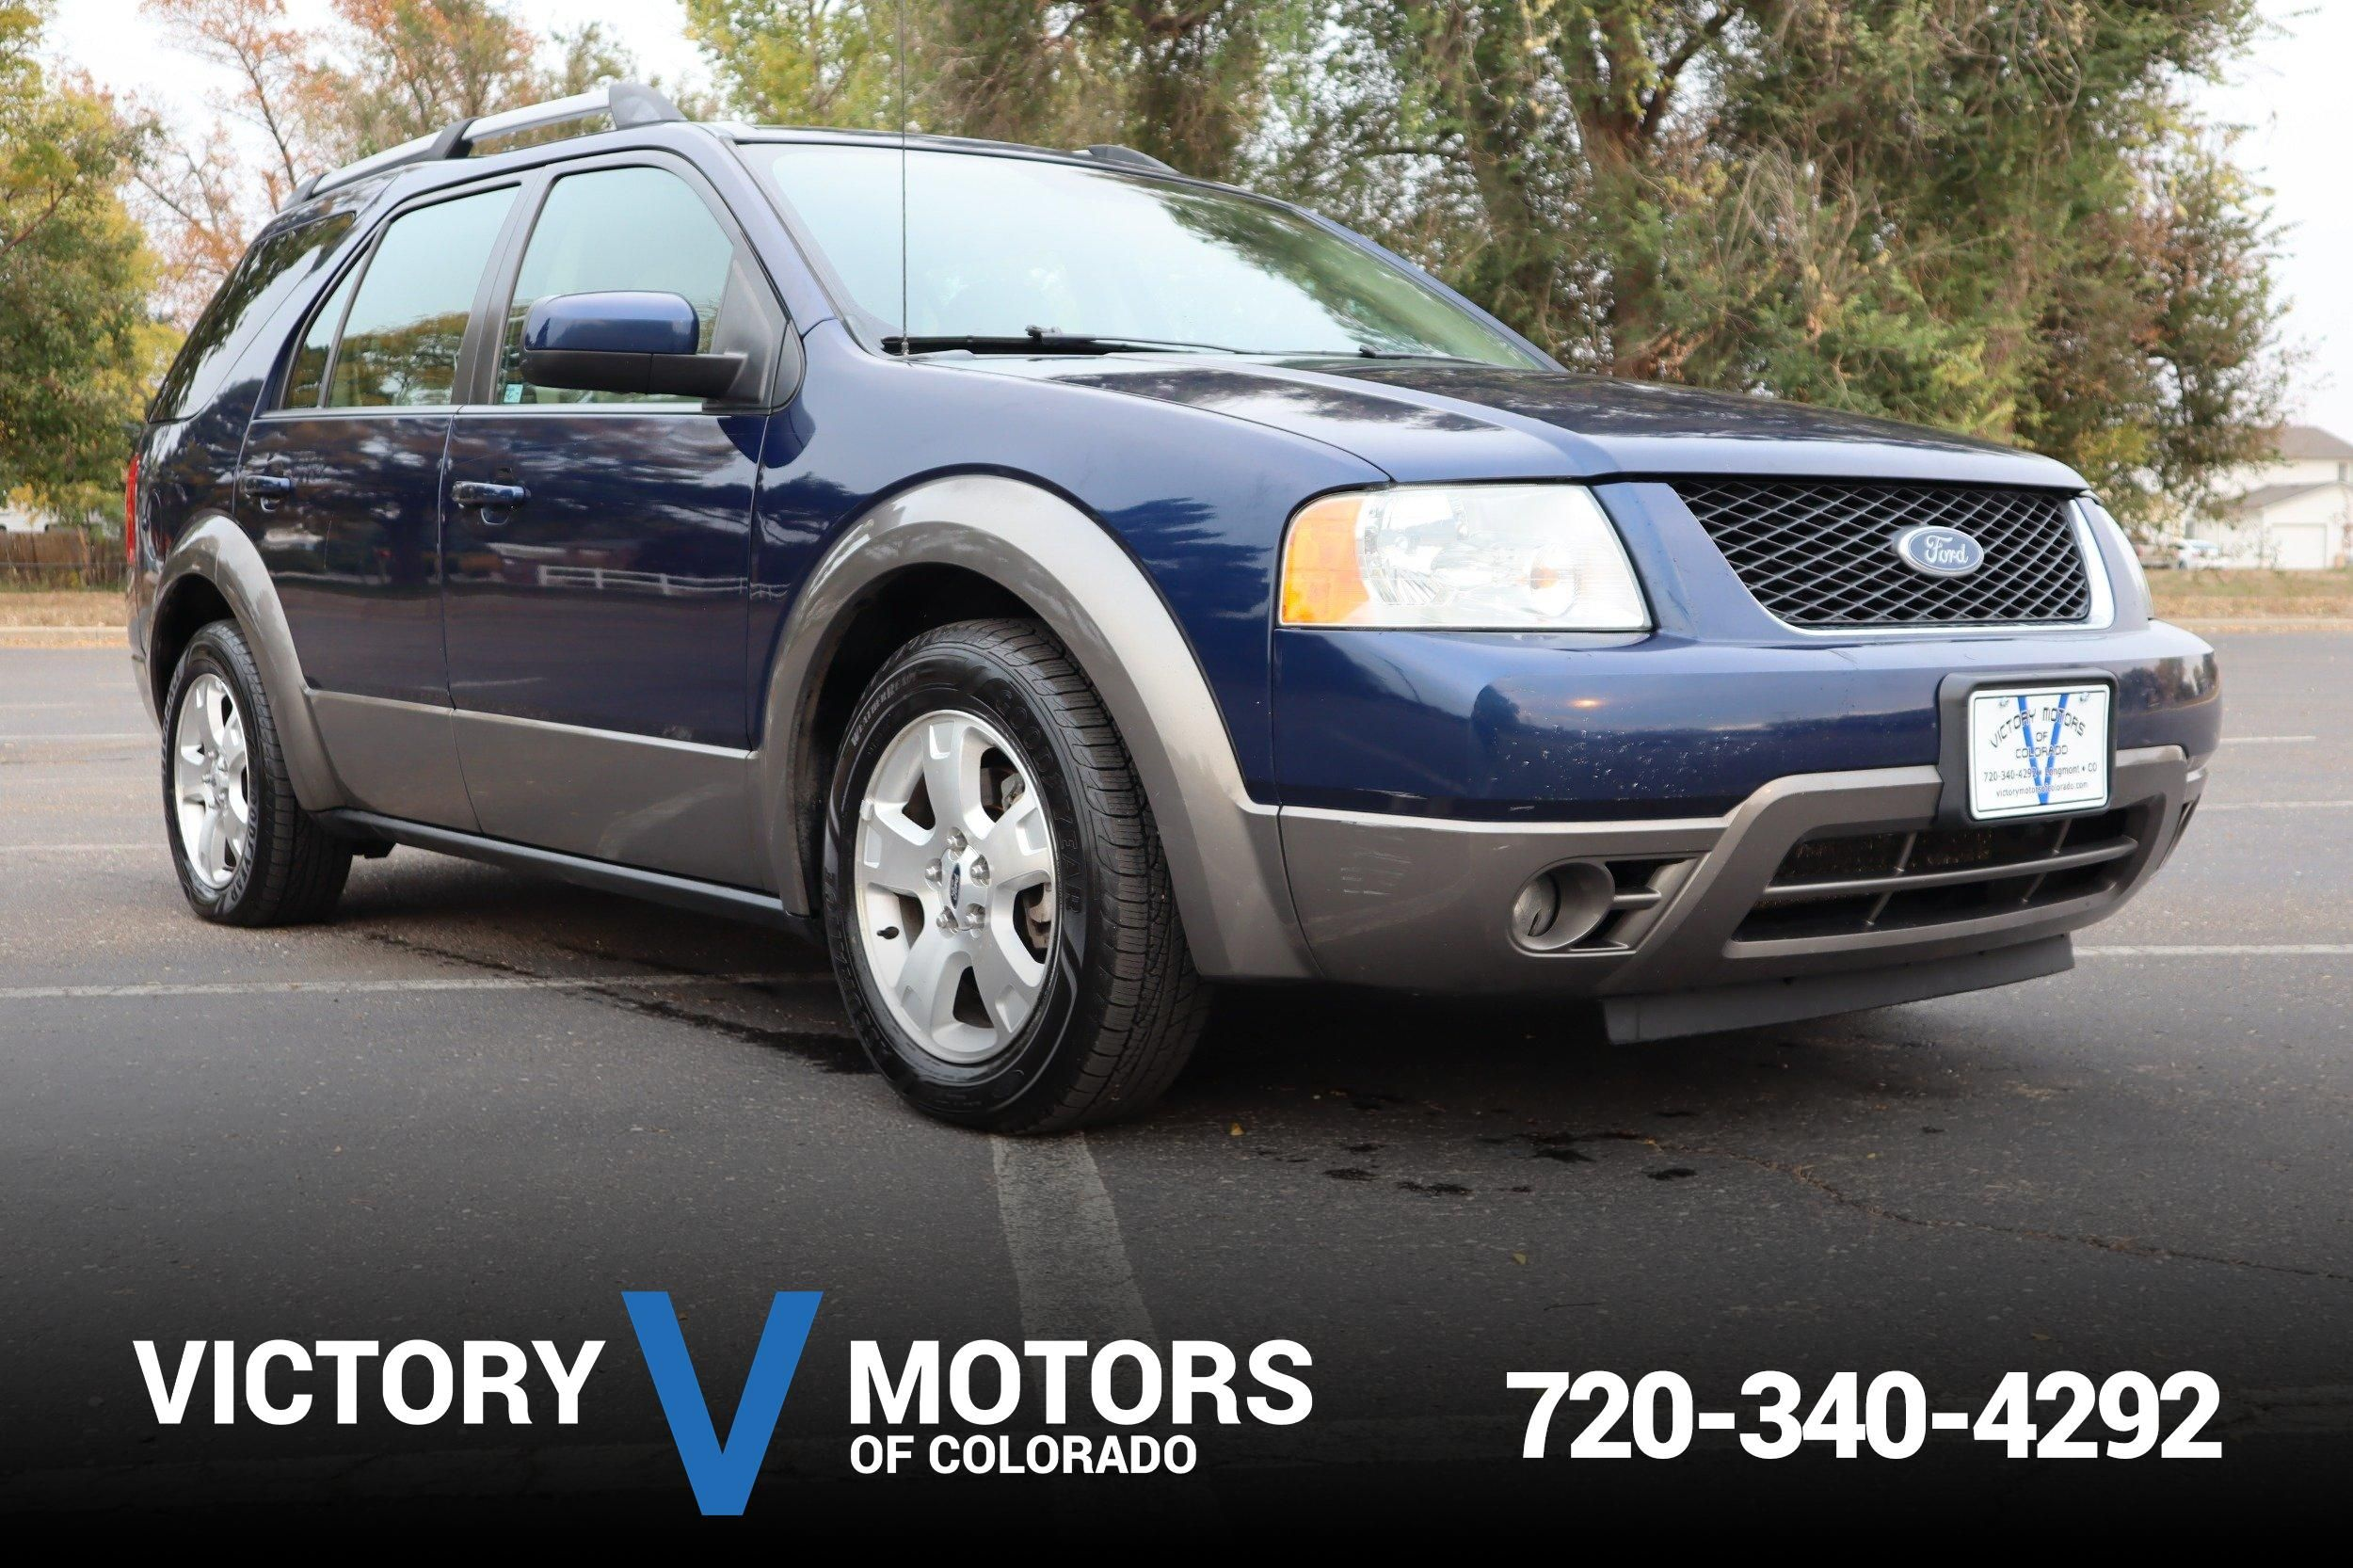 used cars and trucks longmont co 80501 victory motors of colorado used cars and trucks longmont co 80501